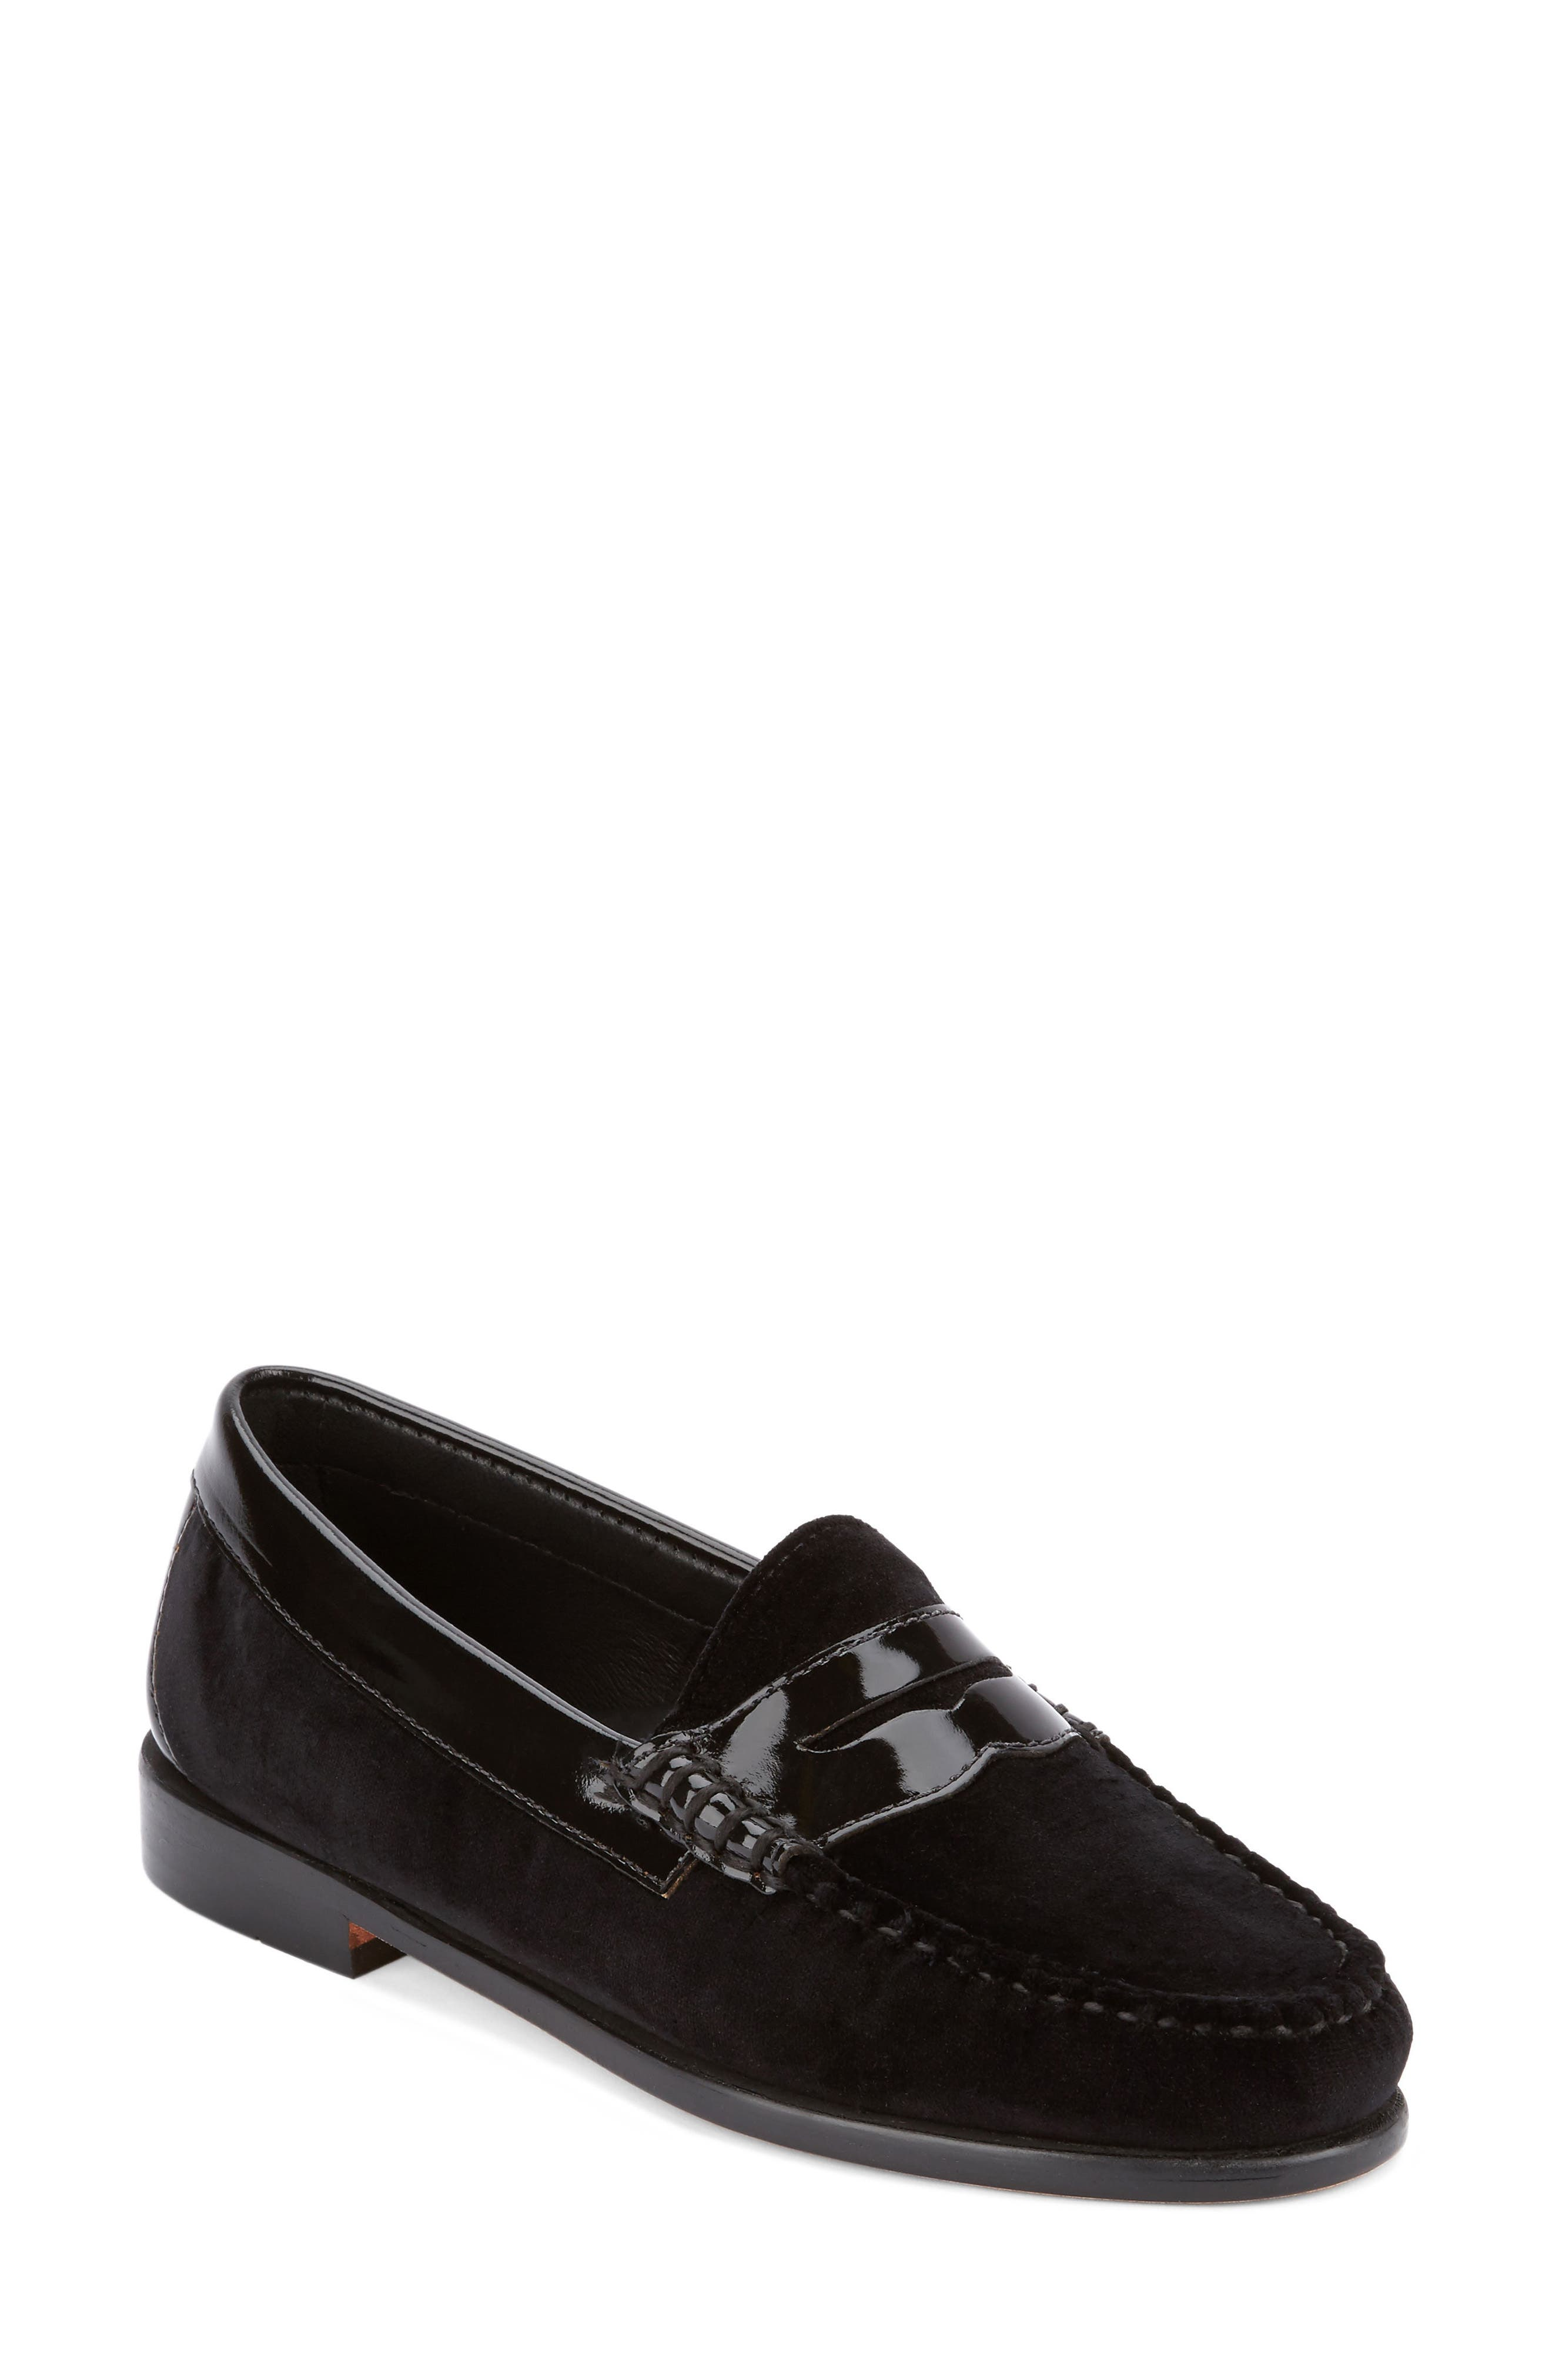 'Whitney' Loafer,                         Main,                         color,